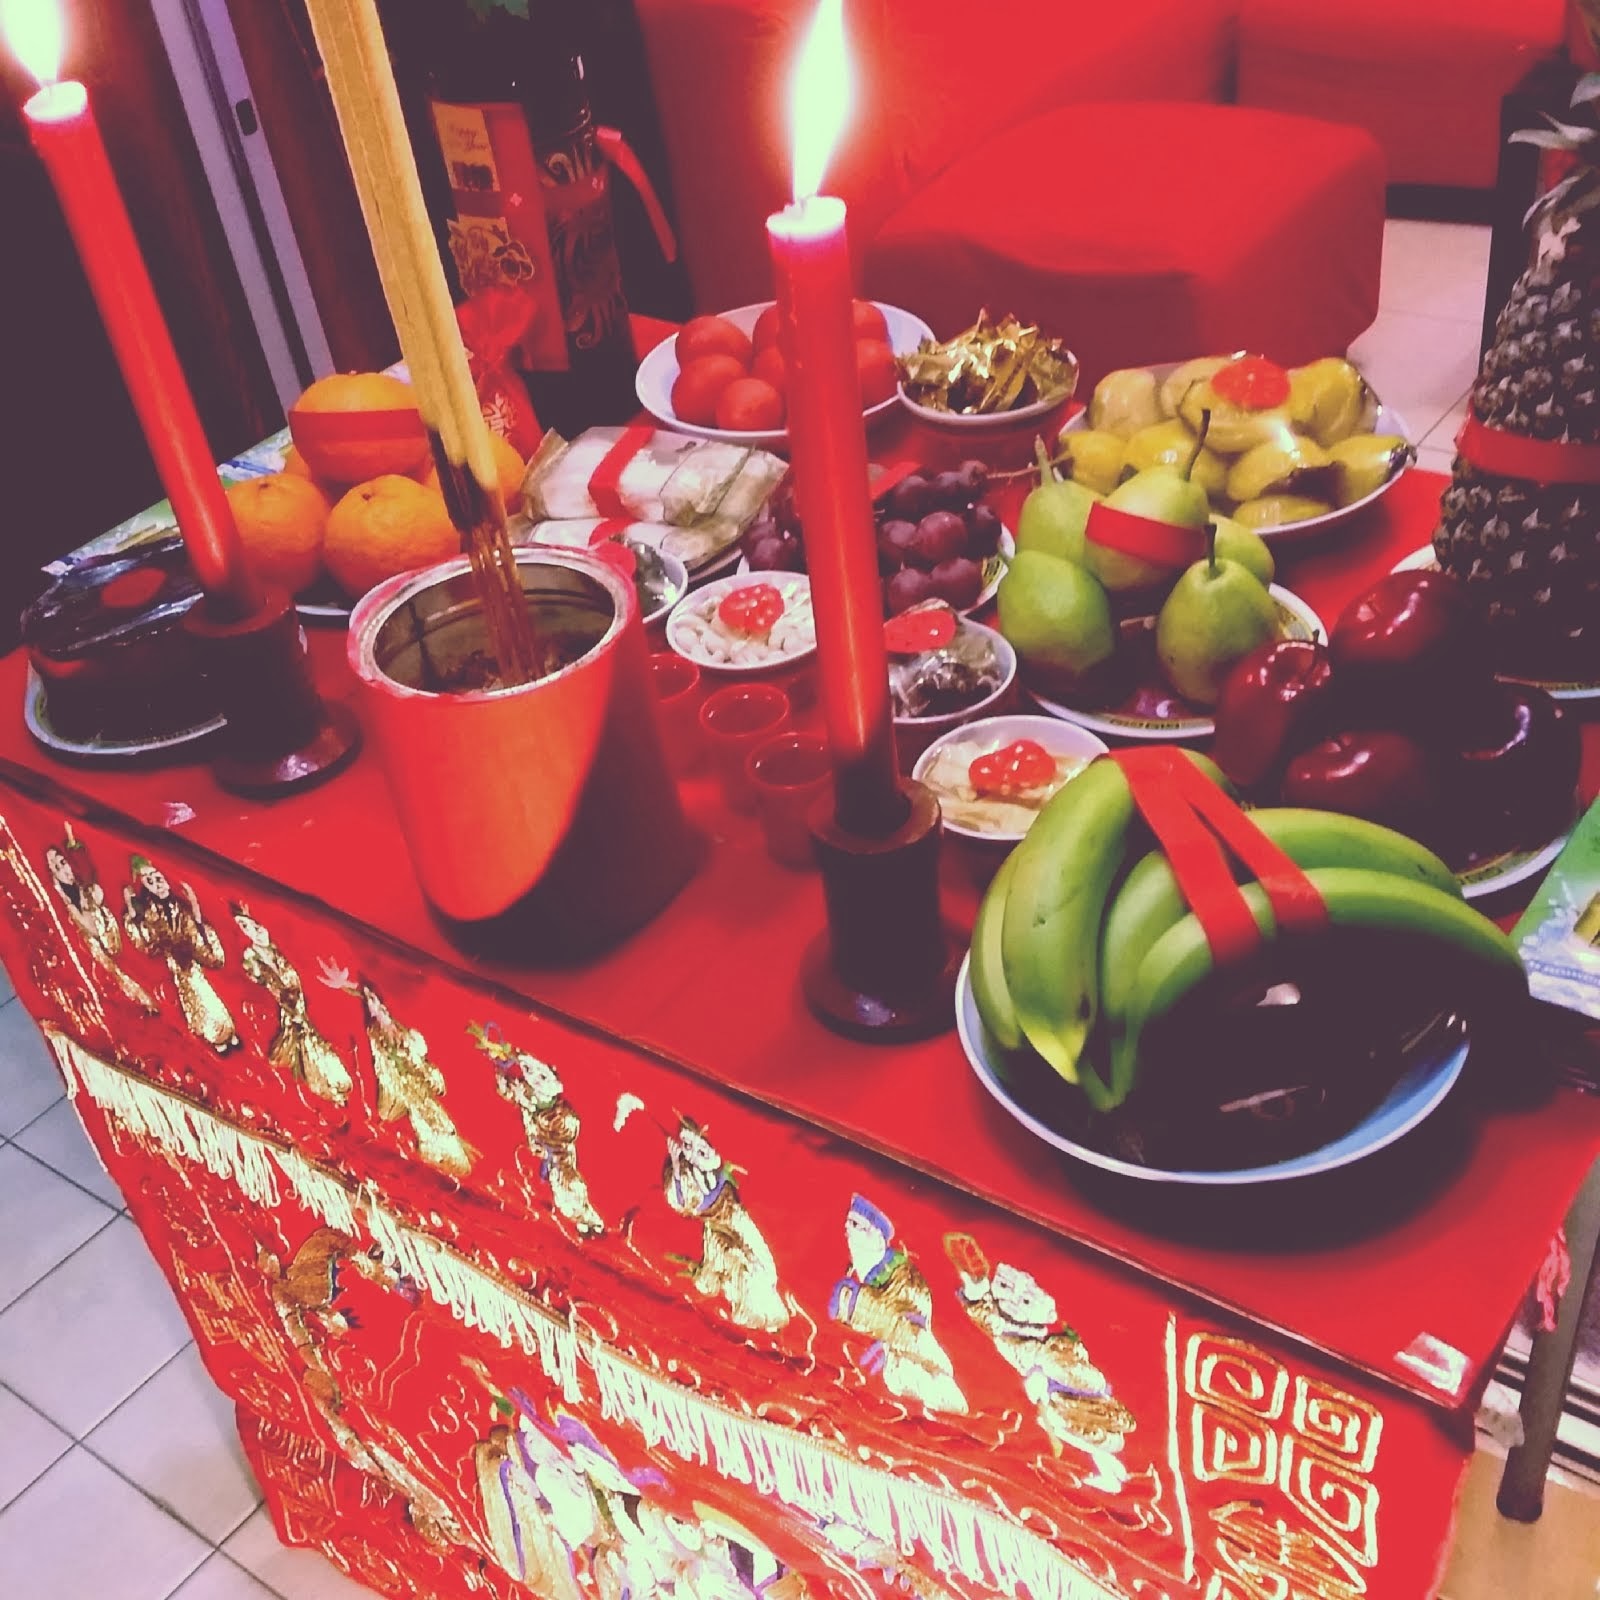 HAPPY PAI TI GONG 2014 JADE EMPEROR BIRTHDAY